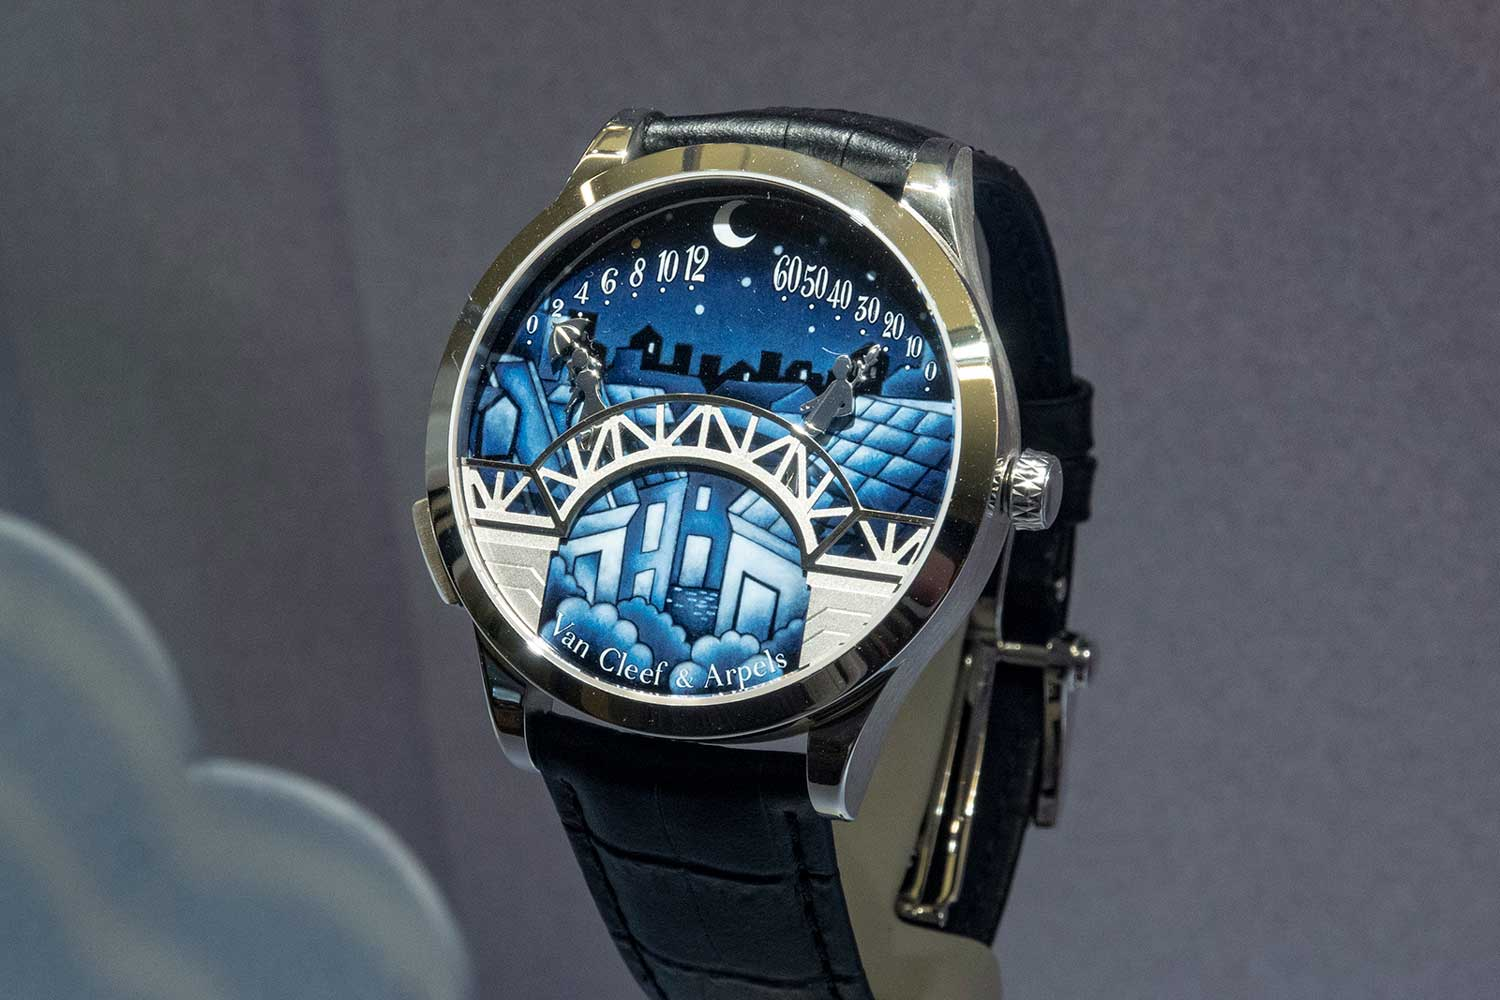 A casual shot of the Pont des Amoureux housed in the Midnight case, sized at 42mm. The retrograde displays are cast wider and the figures are shorter, with a deep blue background for the grisaille enamel than the Lady Arpels model. (Image by Revolution)